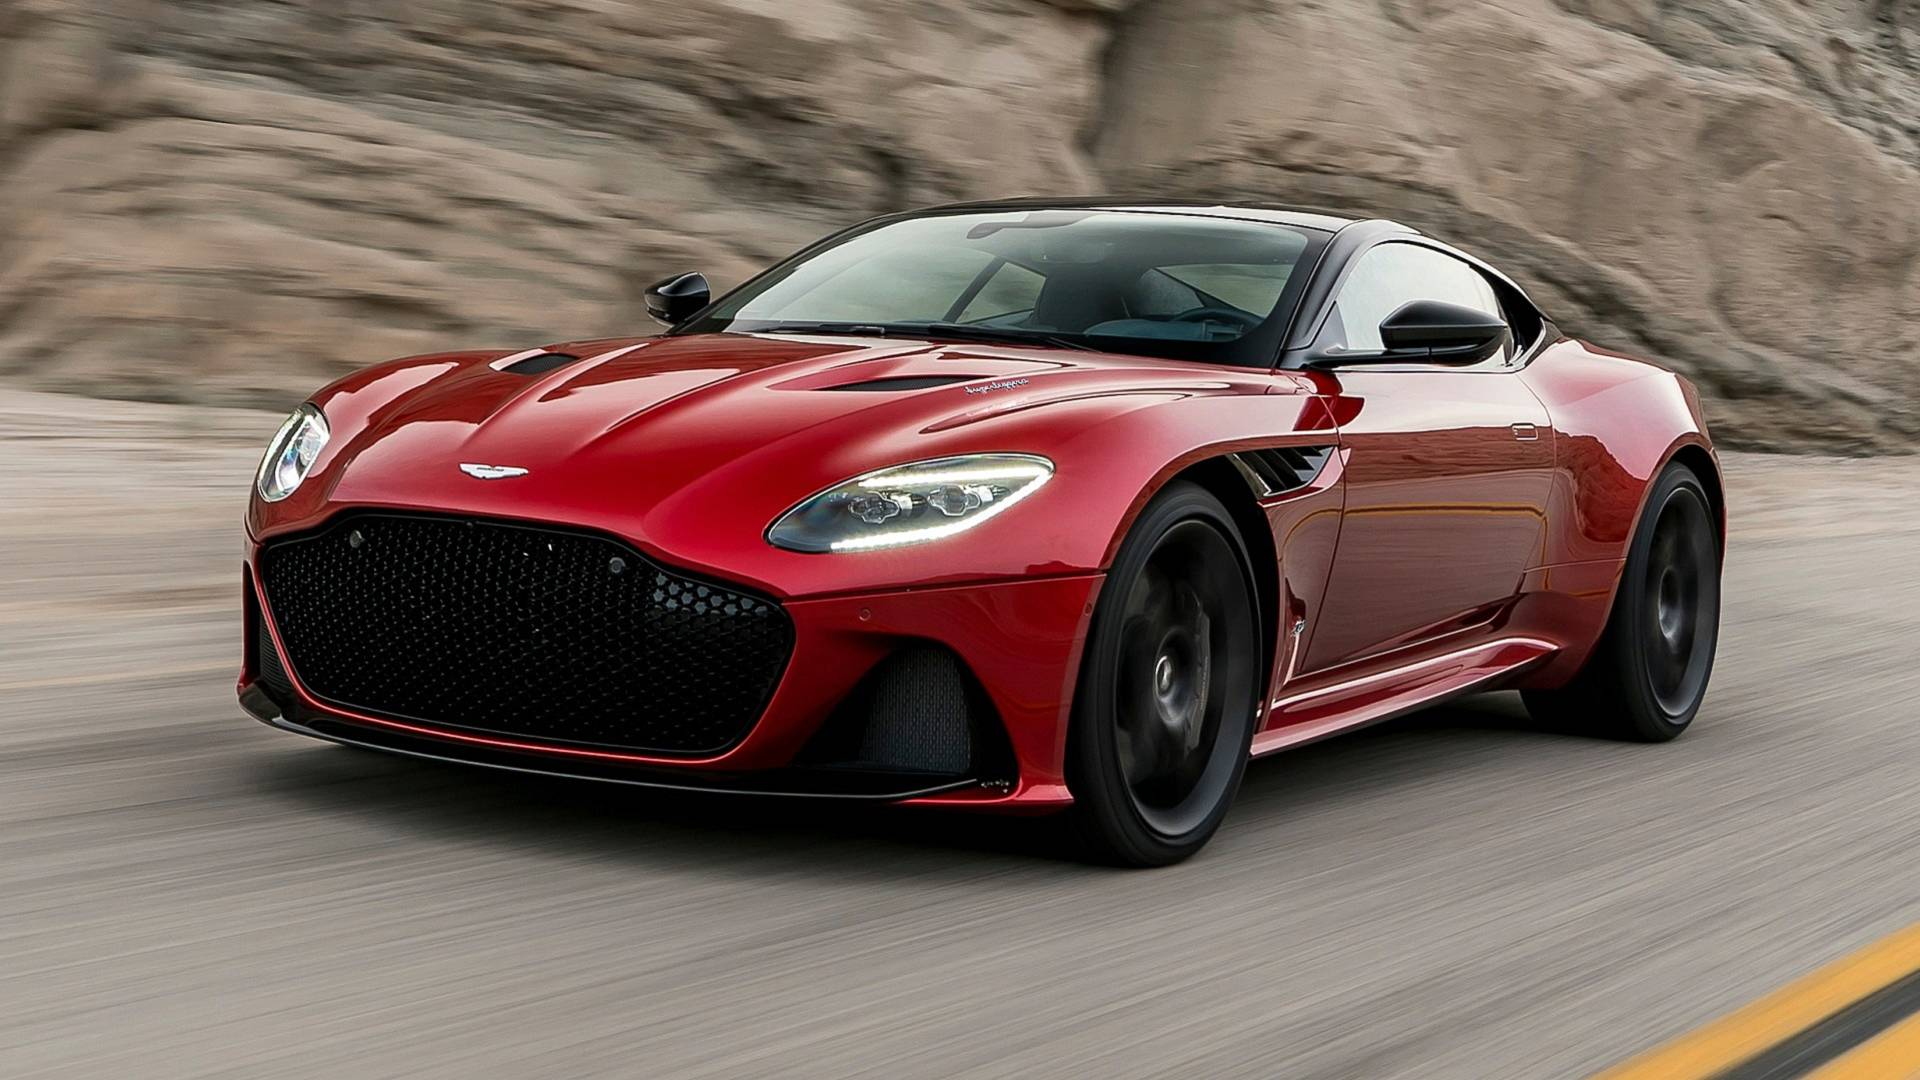 Aston Martin DBS Superleggera Is A V12 Flagship Monster 1920x1080